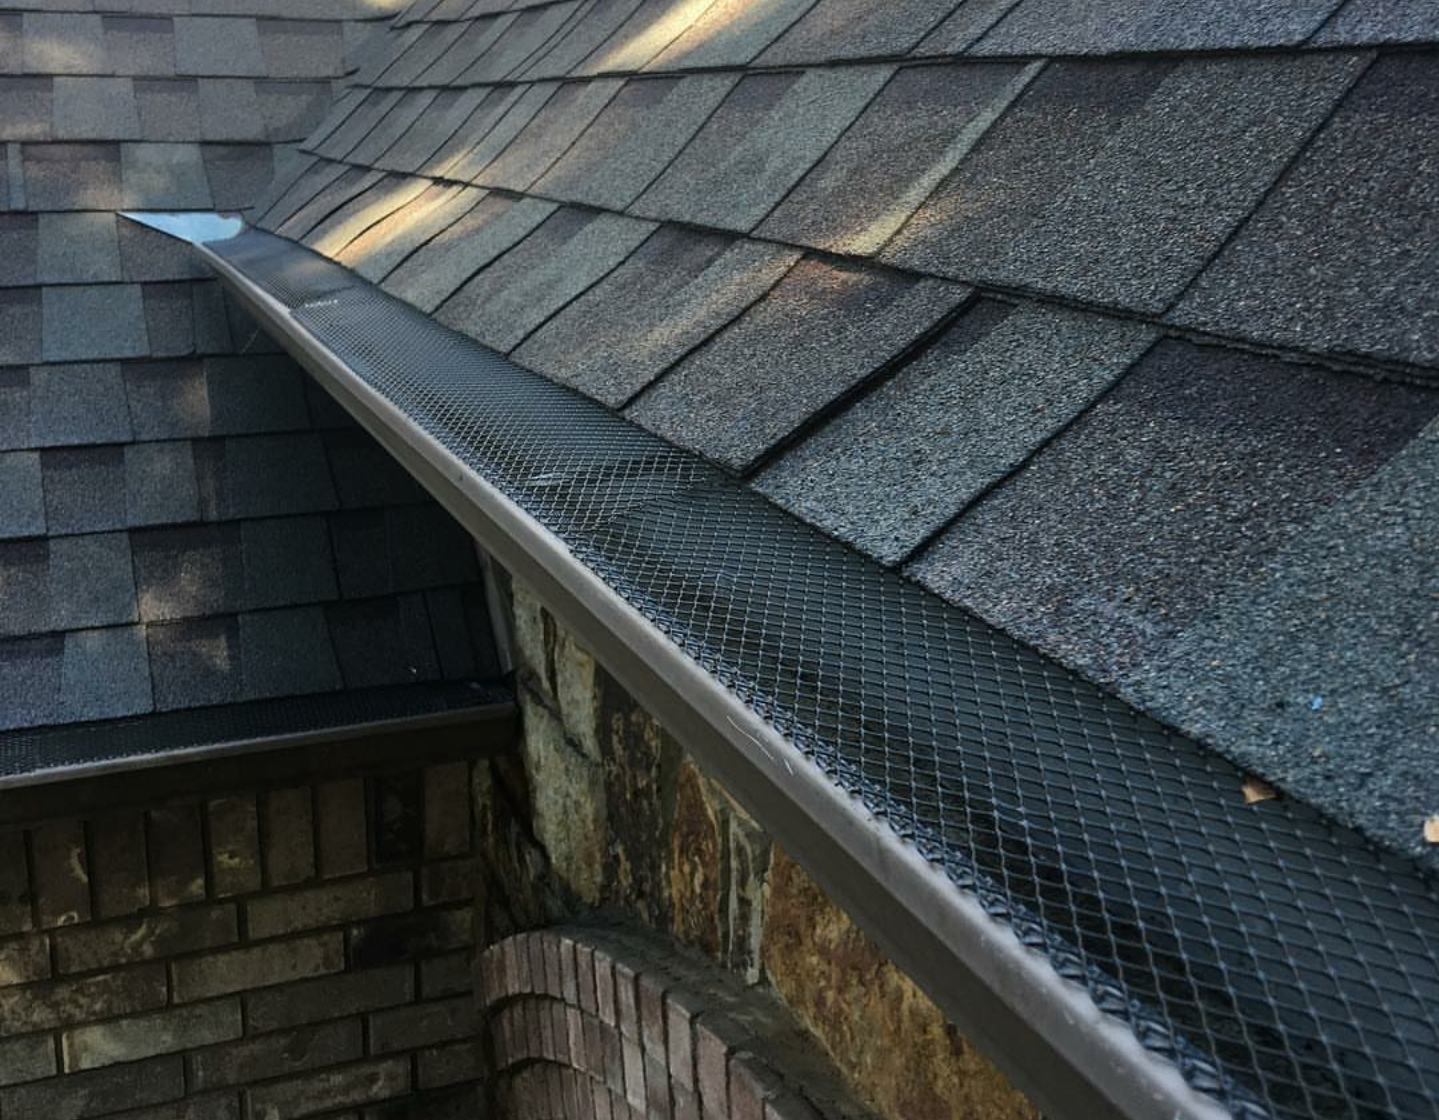 Gutter Cleaning - Gutters should be checked regularly and serviced if water is not flowing and draining properly. Avoid costly roof repairs by keeping leafs and debris out of your gutters with routine servicing especially around fall time.